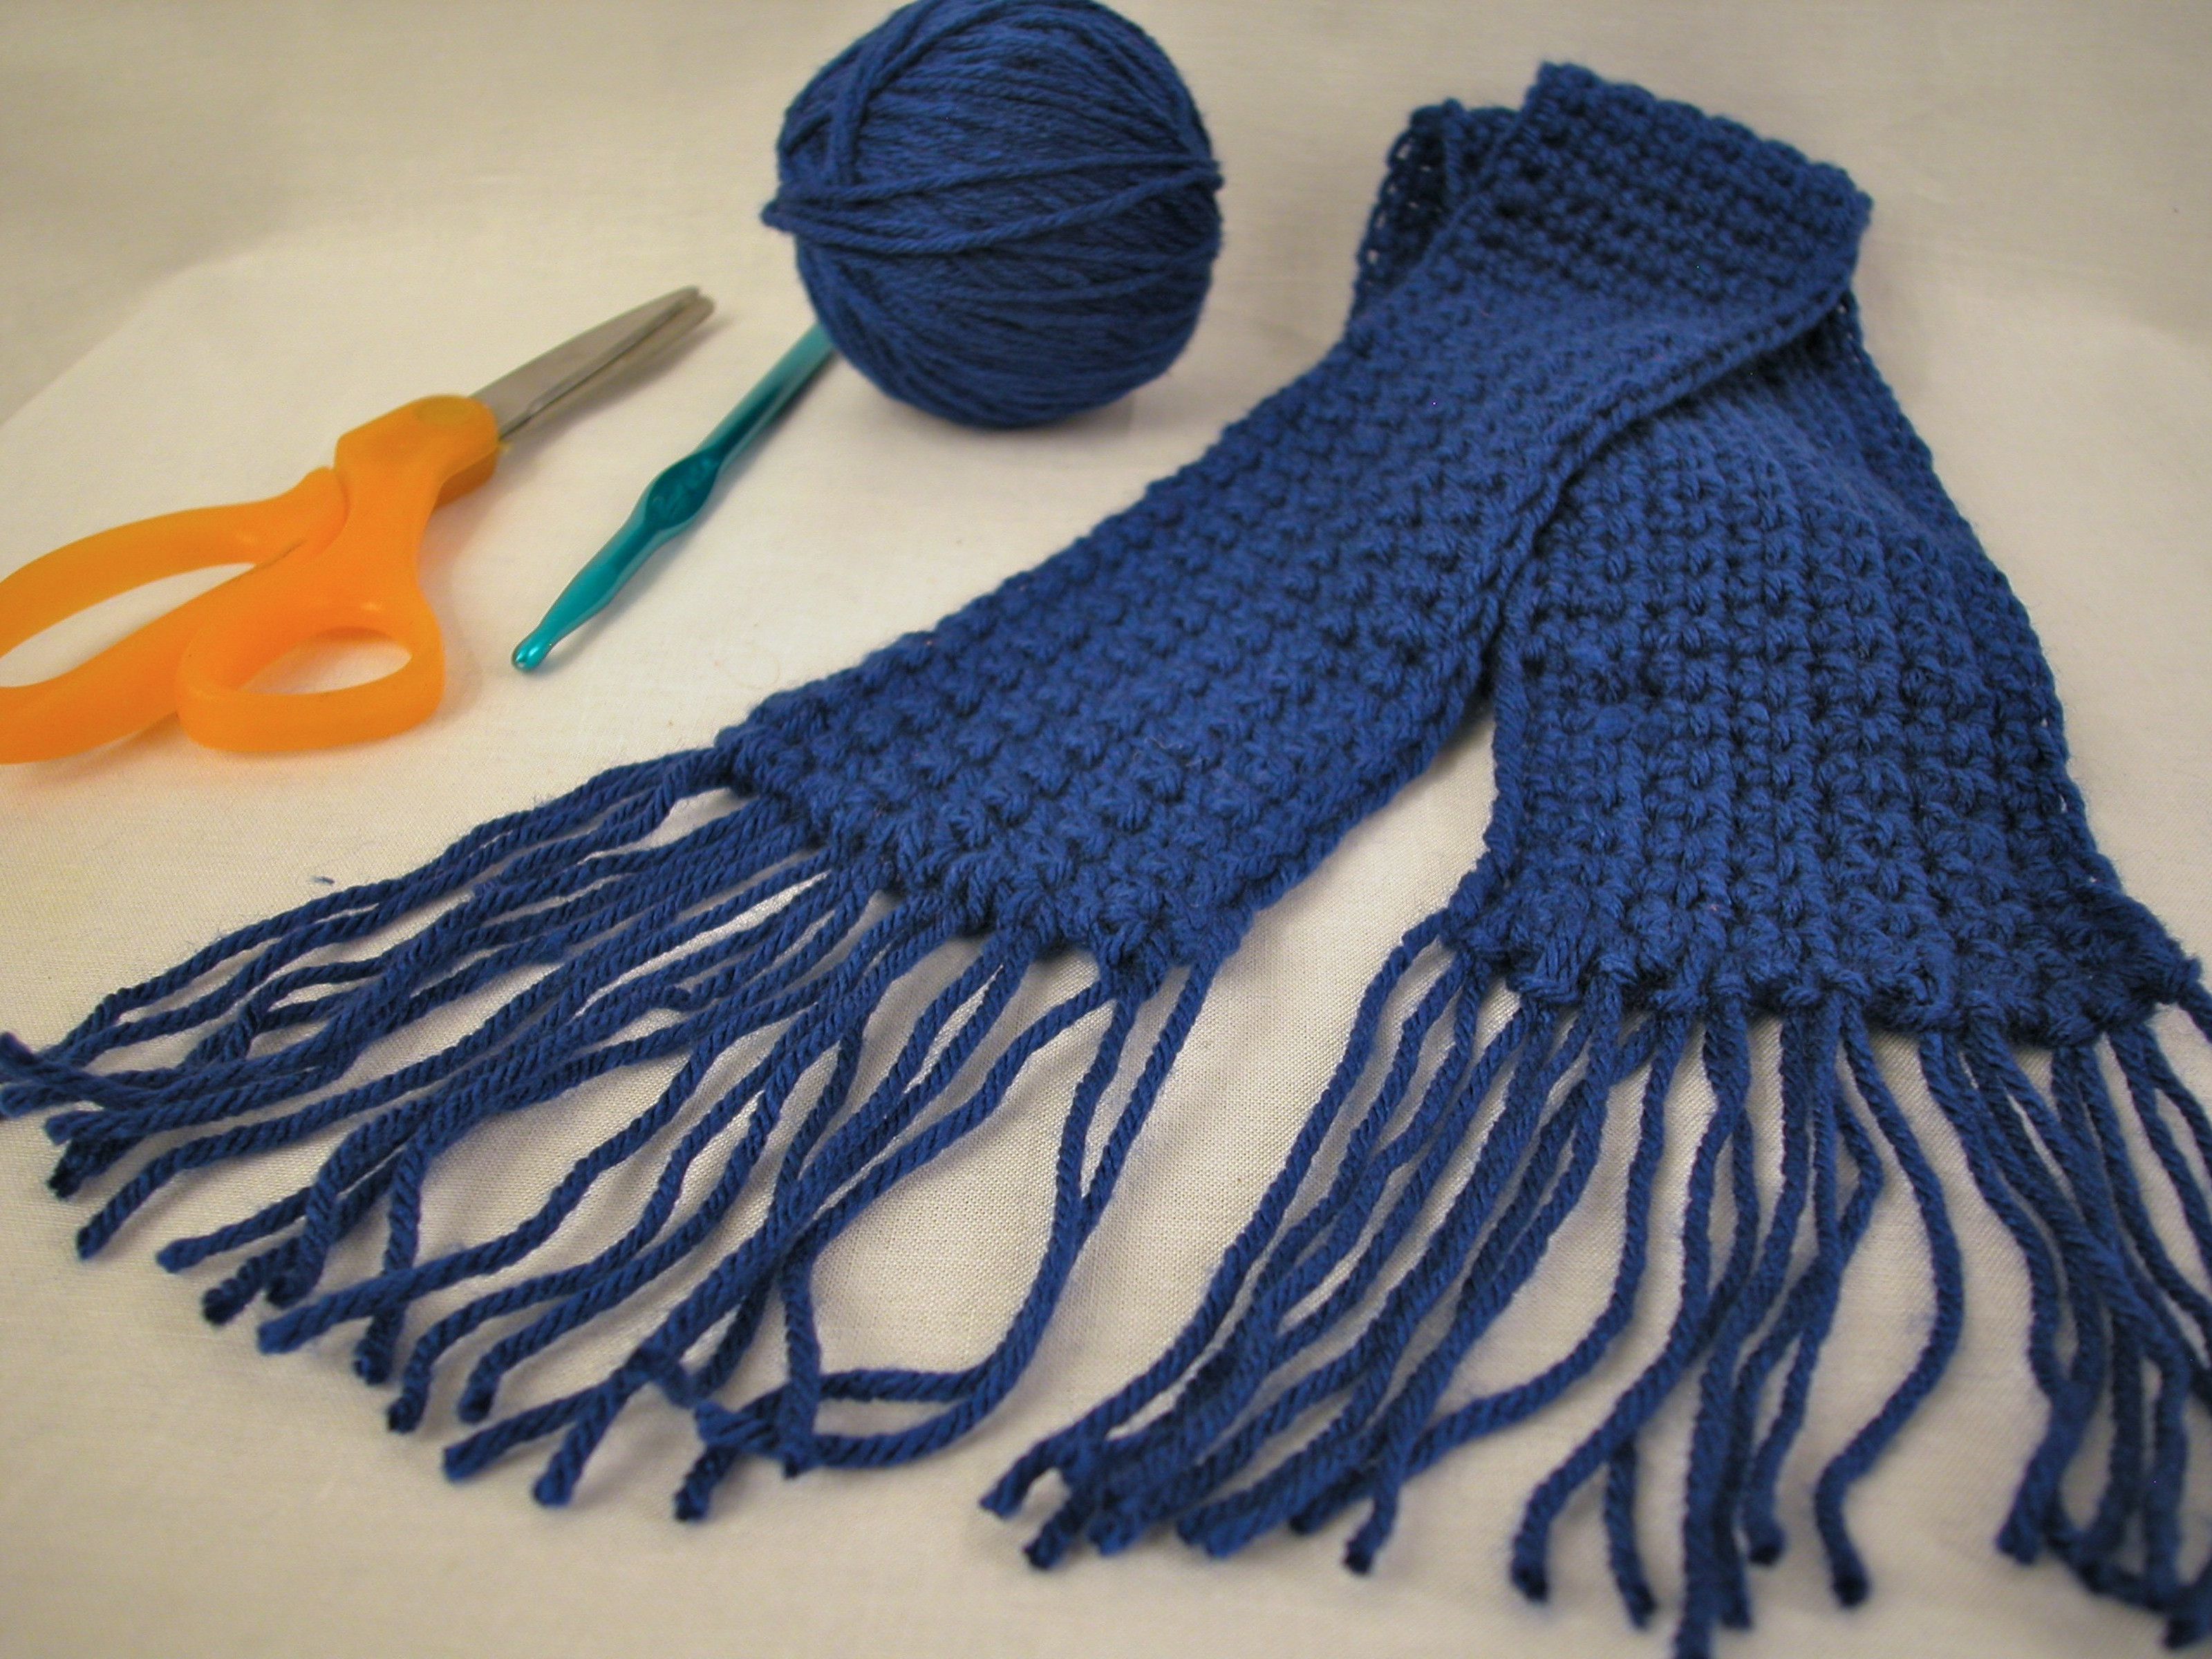 Lovely How to Crochet A Scarf Using Single Crochet 5 Steps Crochet A Shawl Of Innovative 48 Images Crochet A Shawl